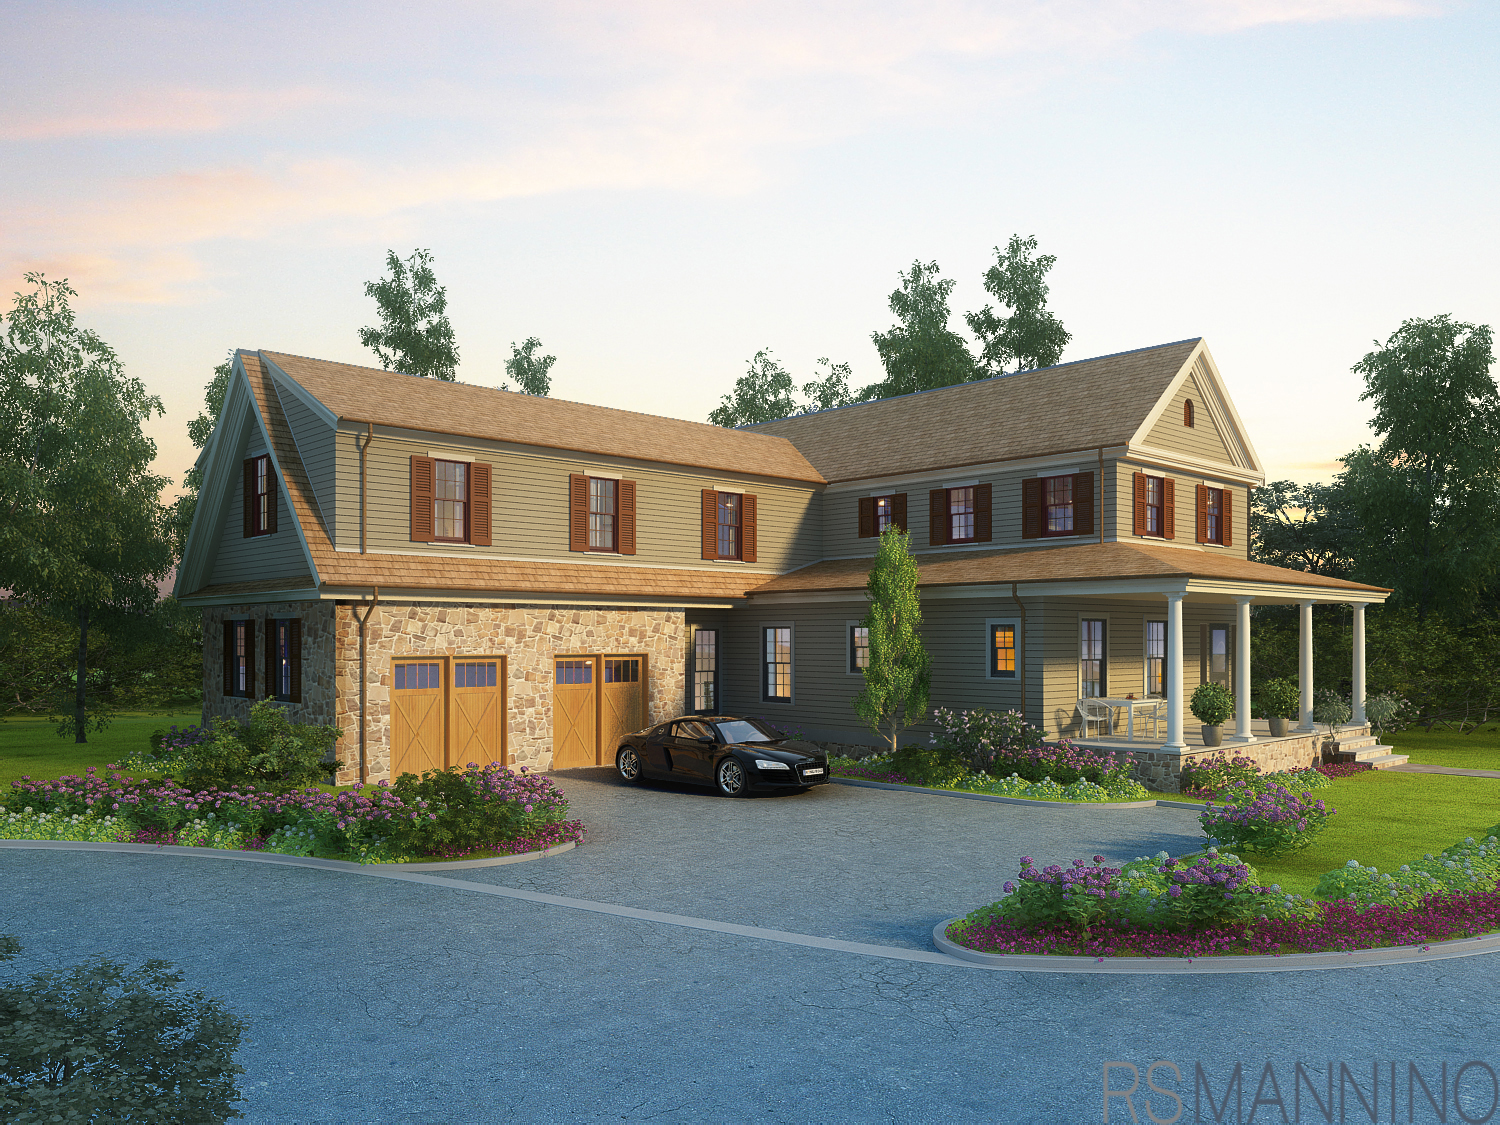 New Construction of a colonial home in Township of Washington, NJ.